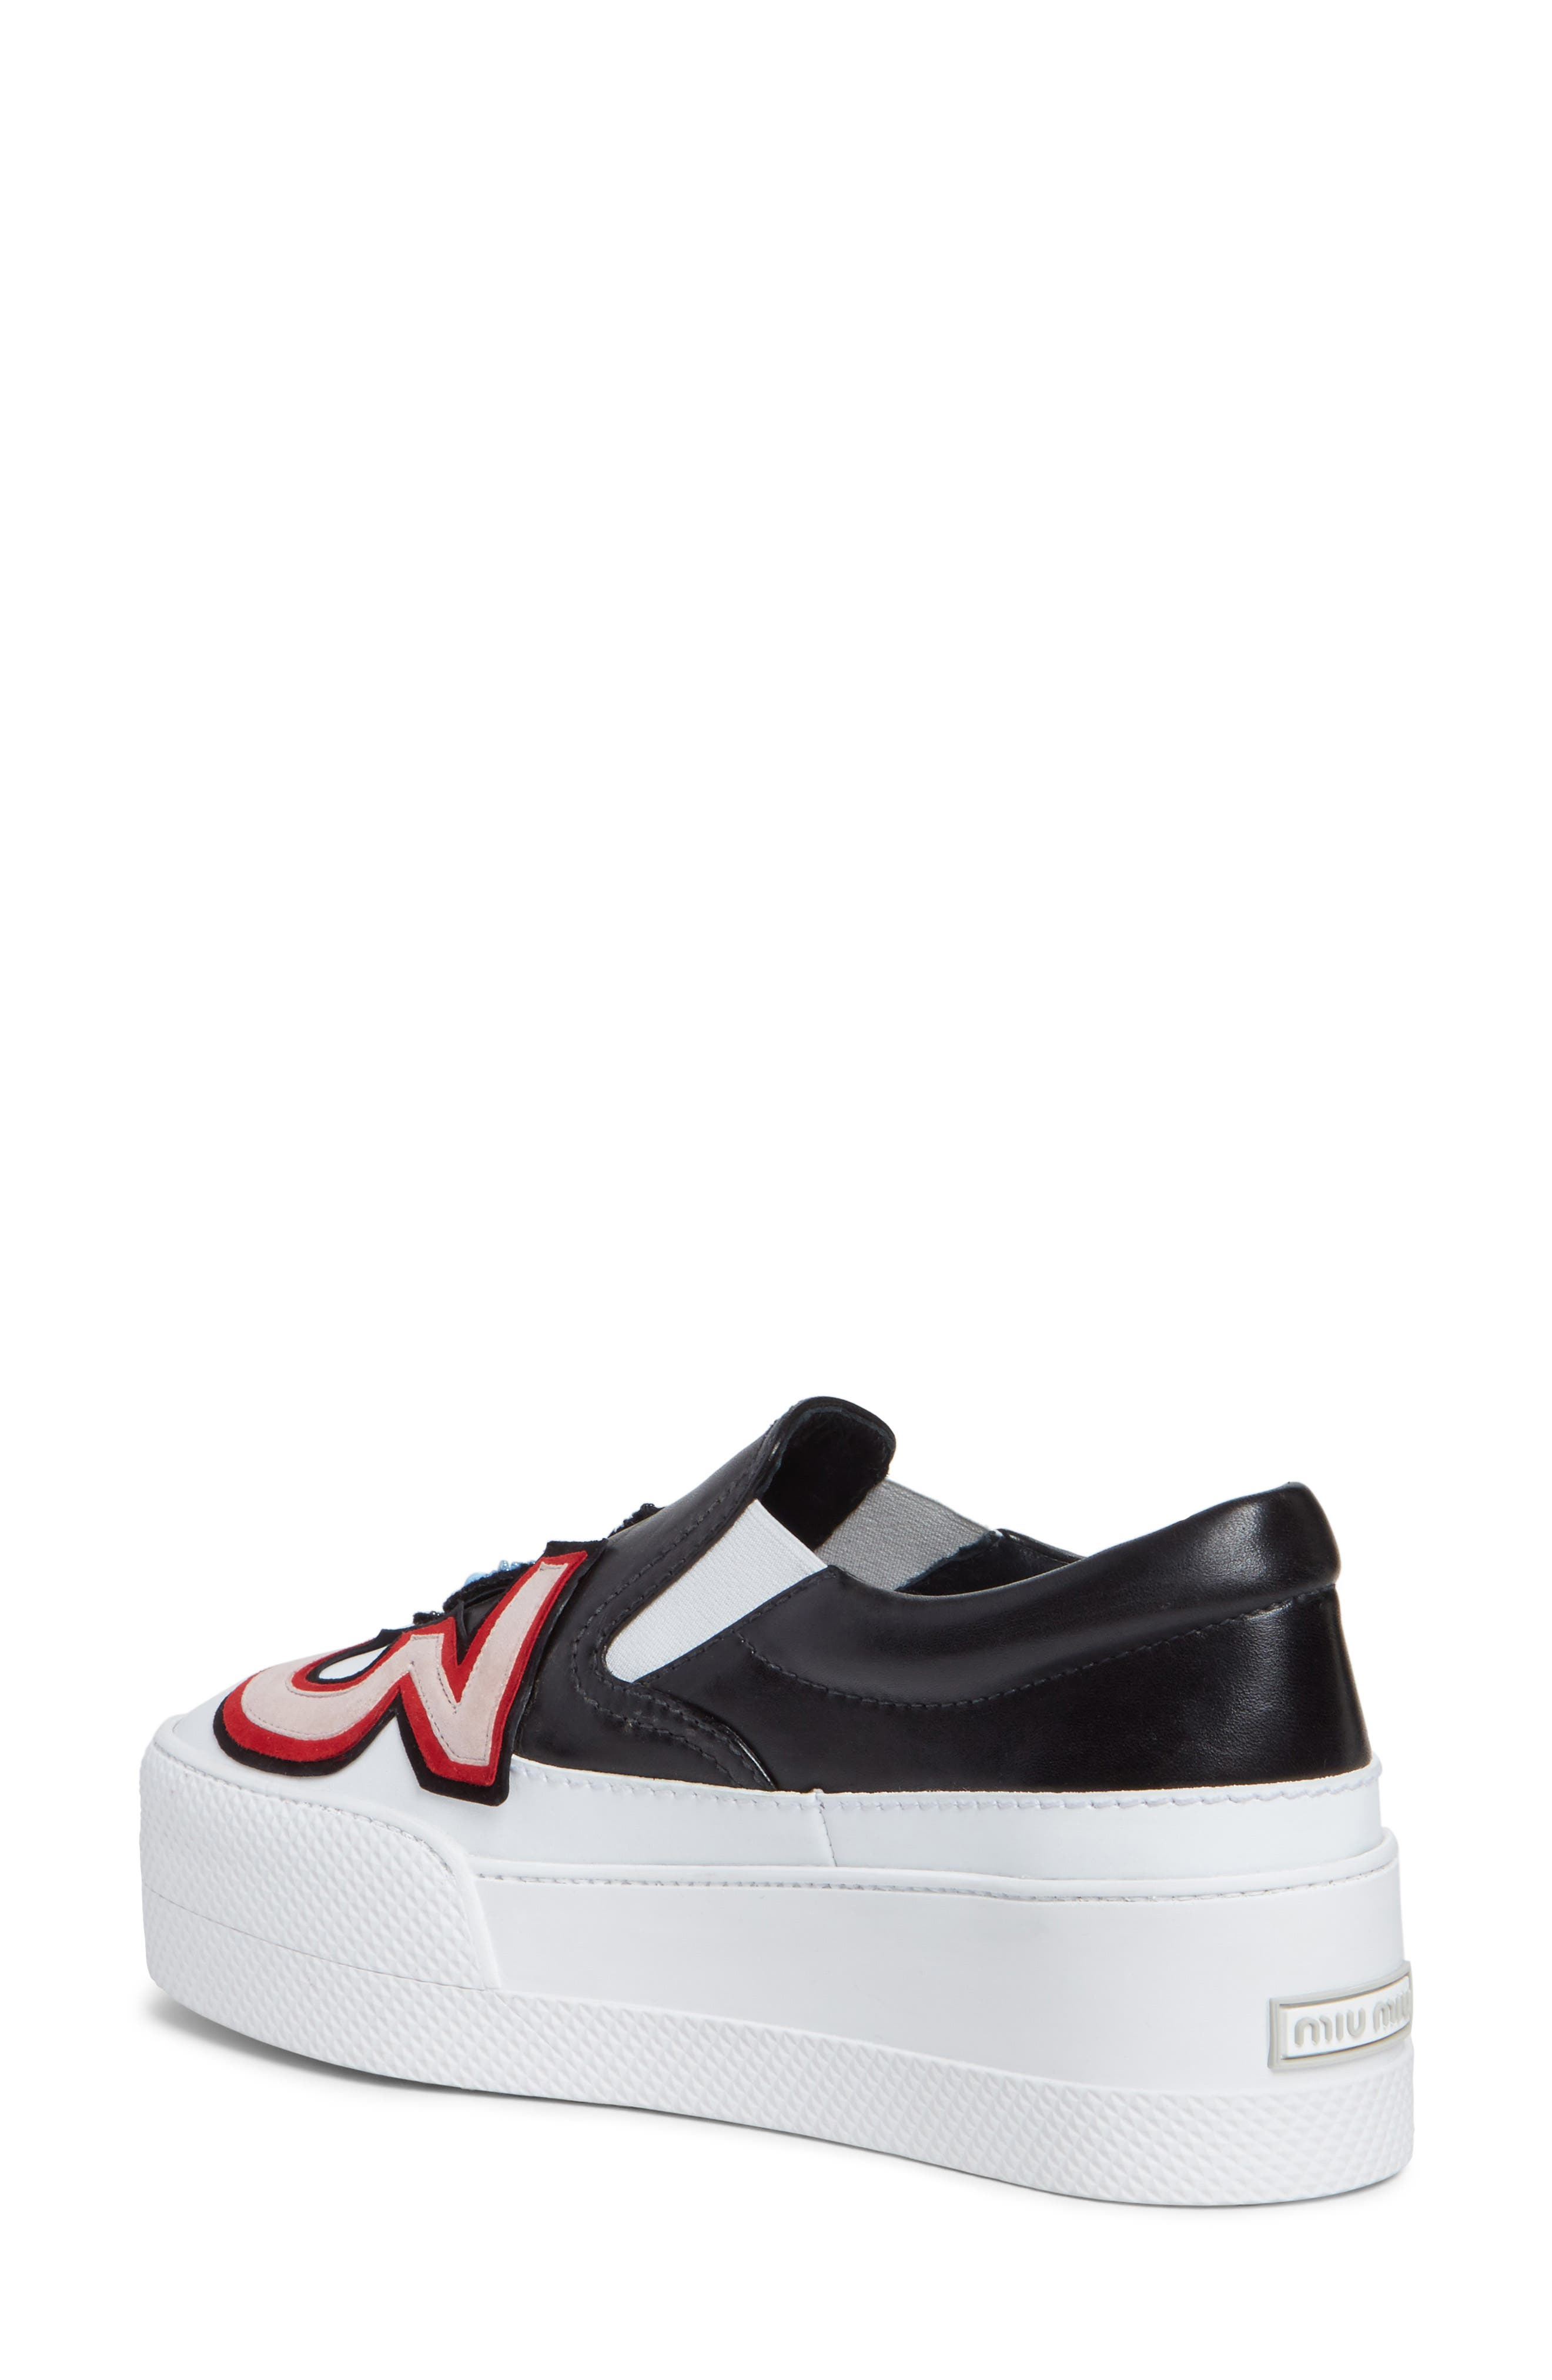 Flatform Slip-On Sneaker,                             Alternate thumbnail 2, color,                             Black/ White